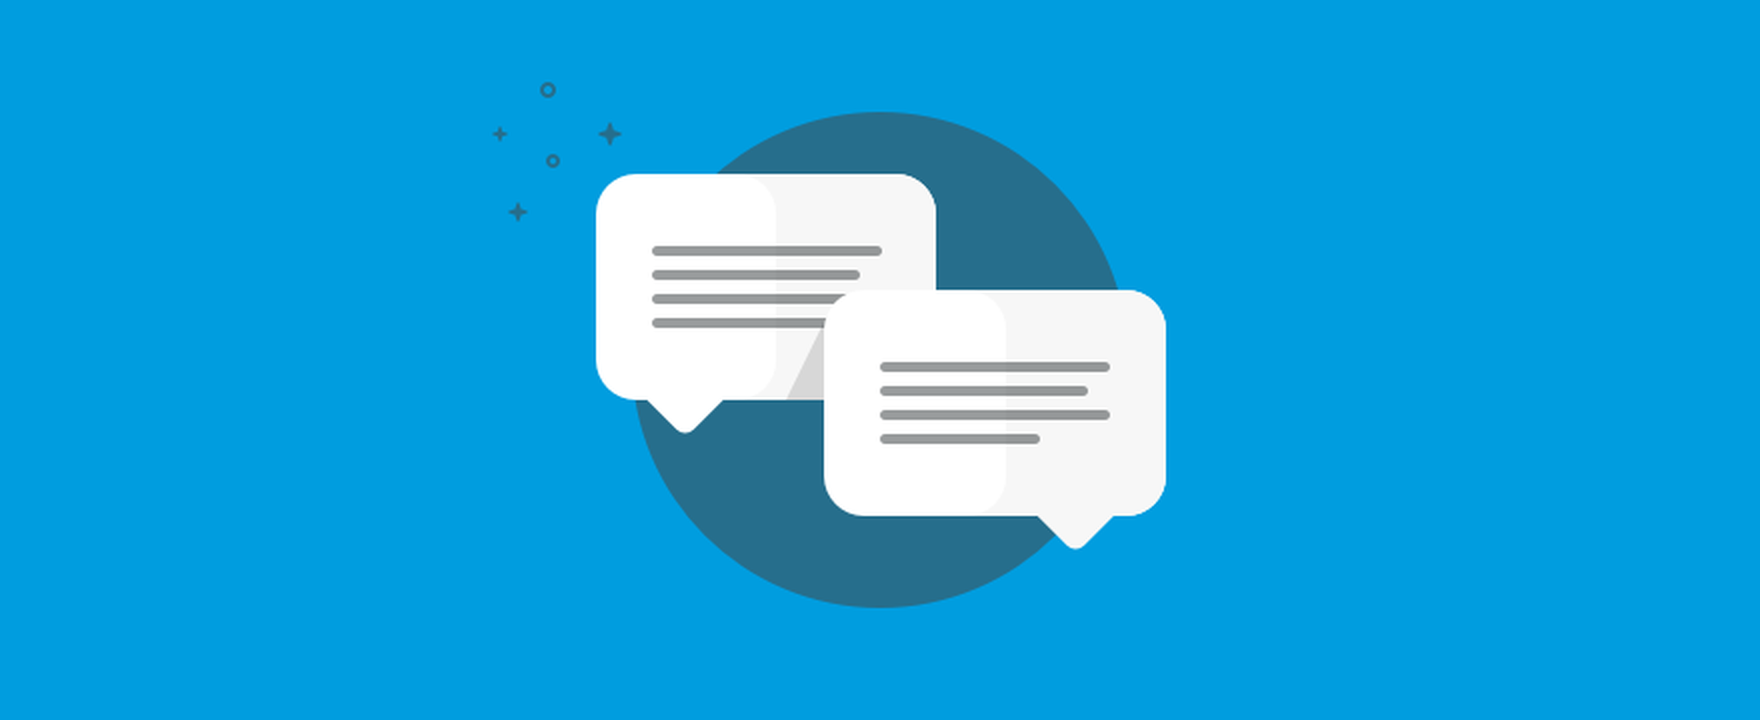 45X ROI WITH PROACTIVE CHAT: WHITE PAPER